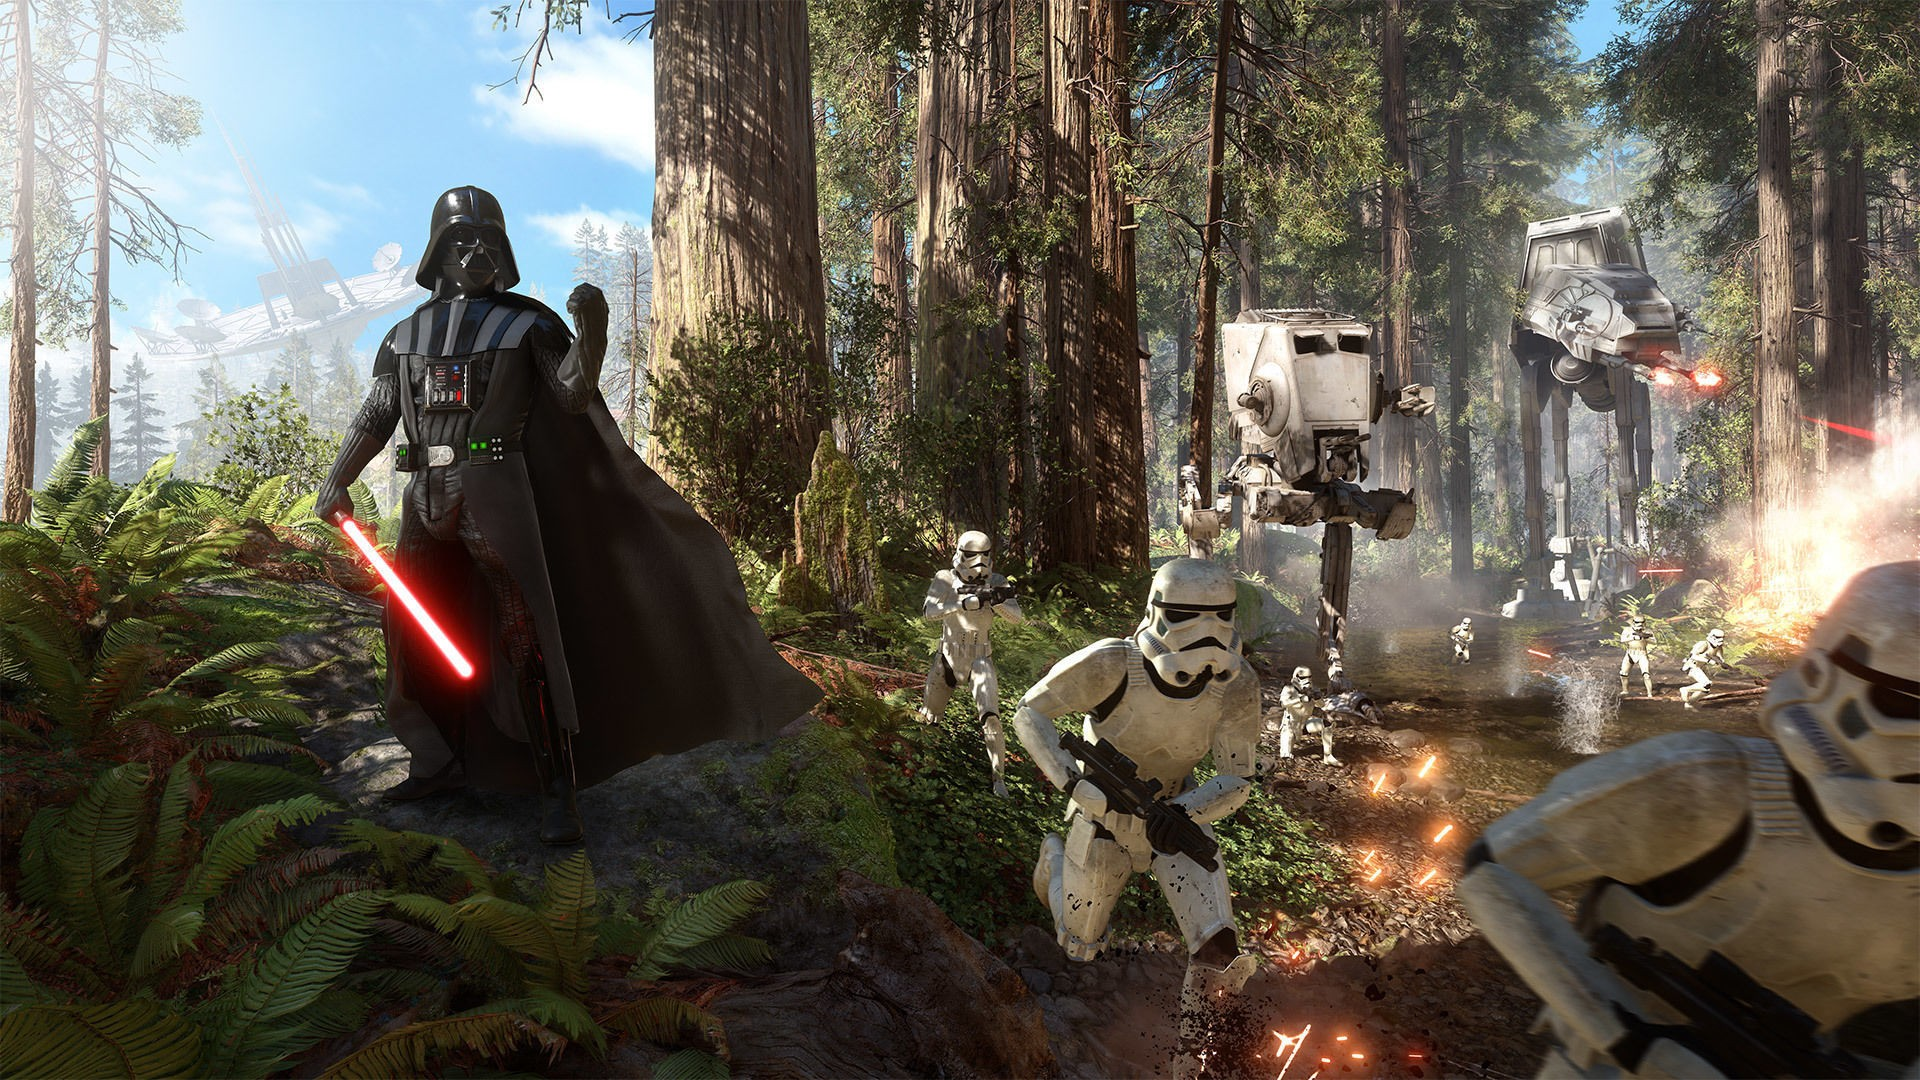 General 1920x1080 Star Wars Star Wars: Battlefront Darth Vader stormtrooper Galactic Empire video games EA DICE AT-ST AT-AT forest Endor